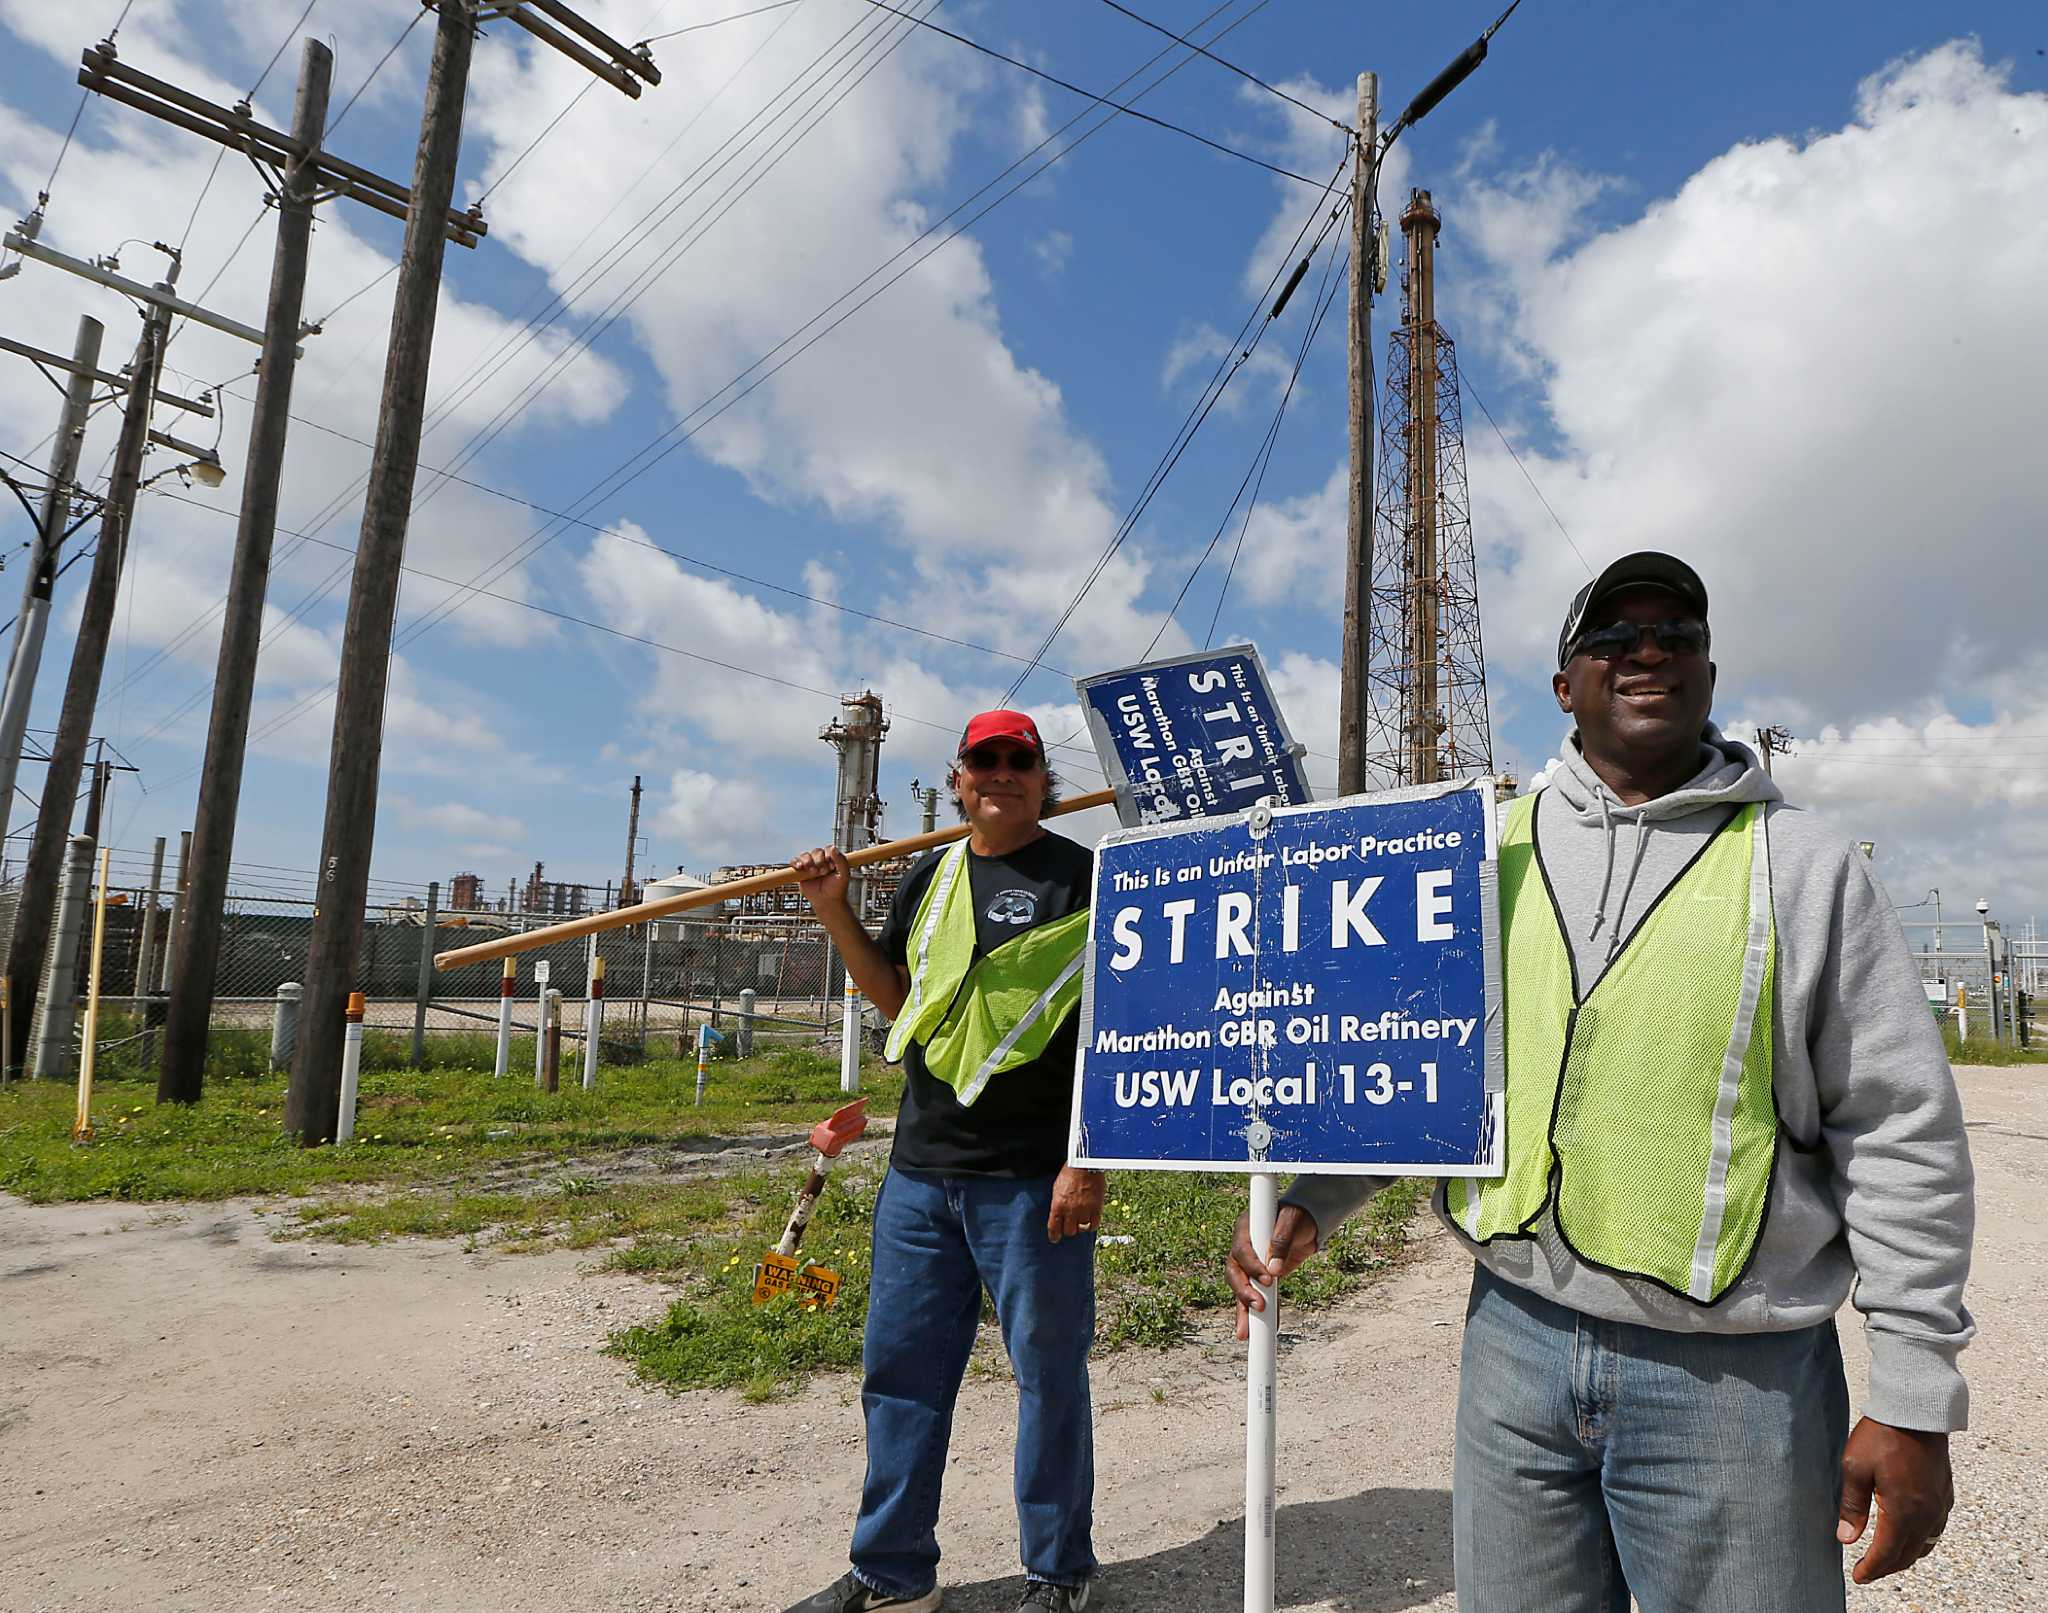 For a number of workers, the strike has yet to end ...